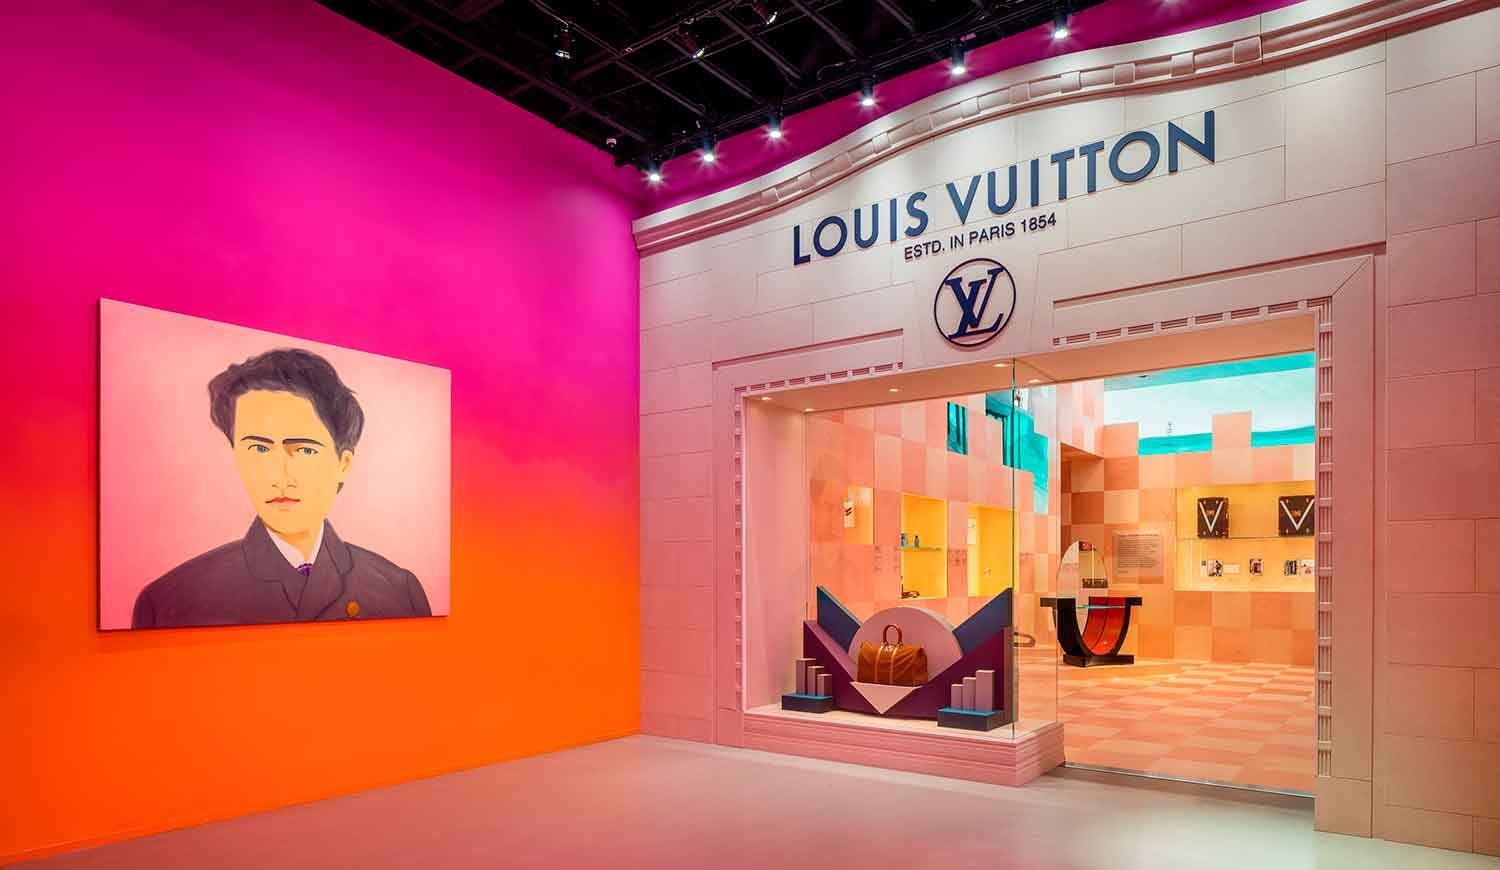 exposicion-Louis-Vuitton-Los-Angeles-escaparate-cuadro